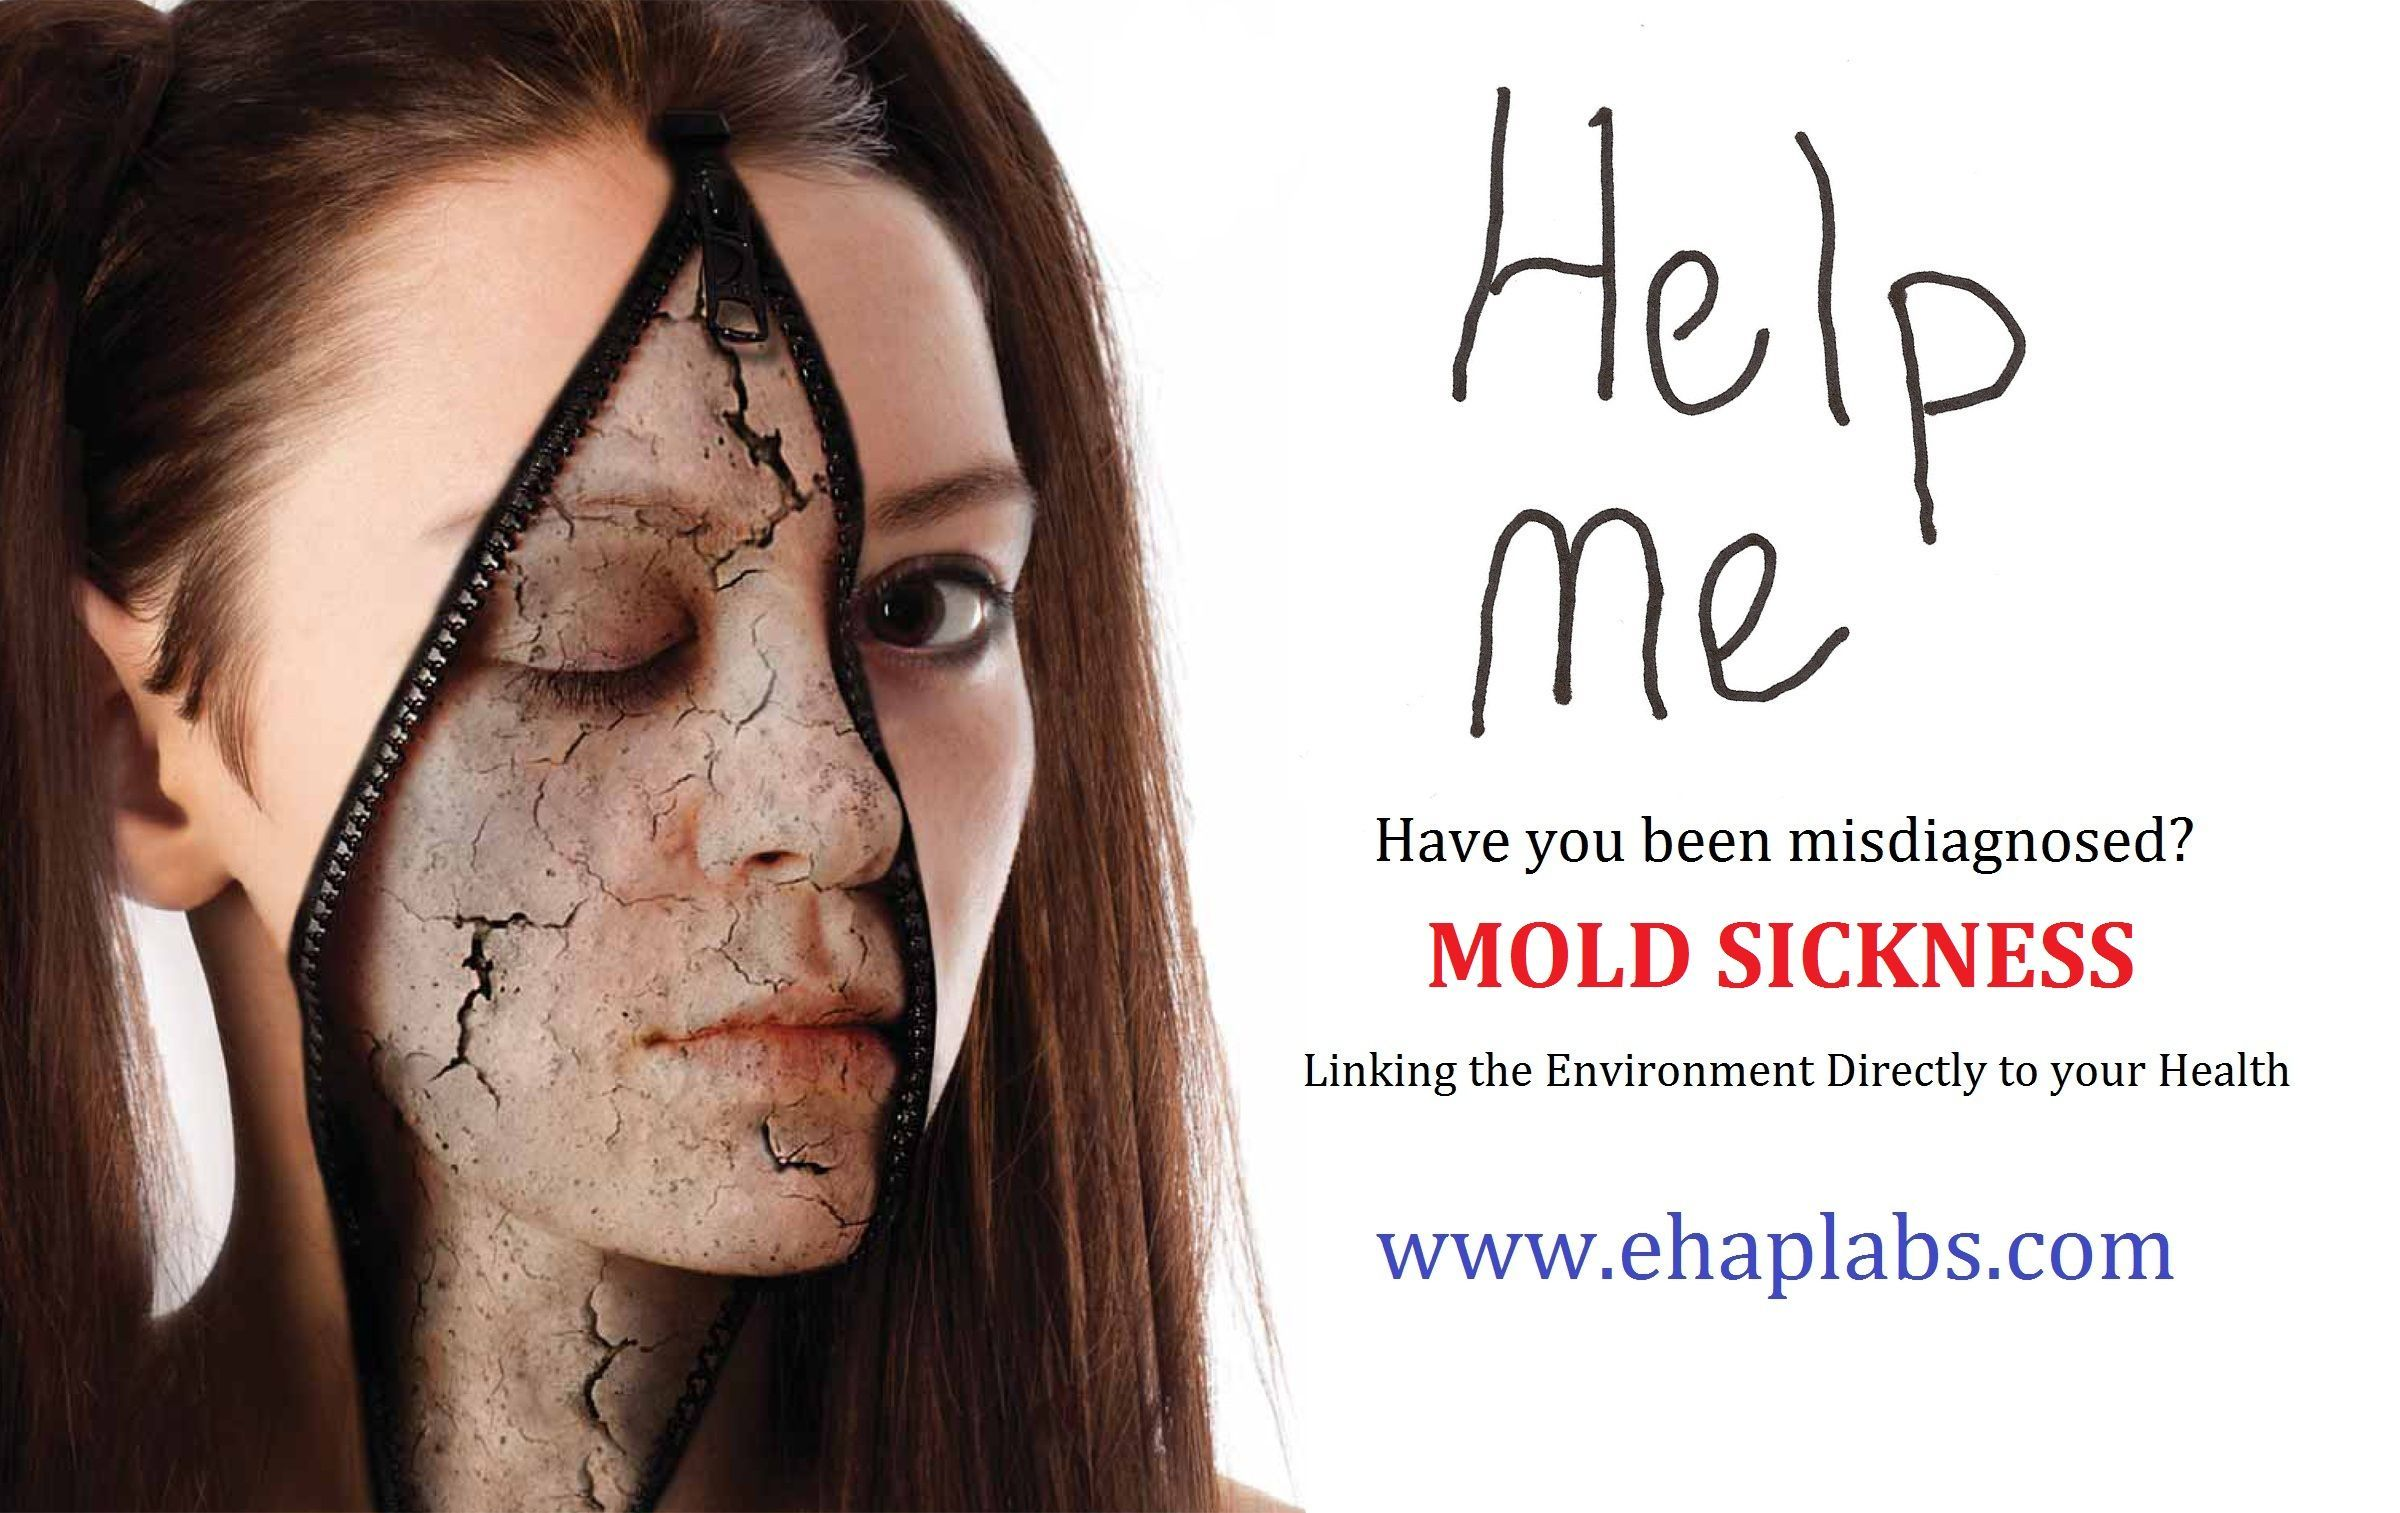 Mold Sickness Treatment Doctors Who Have Experience In The Right For Illness